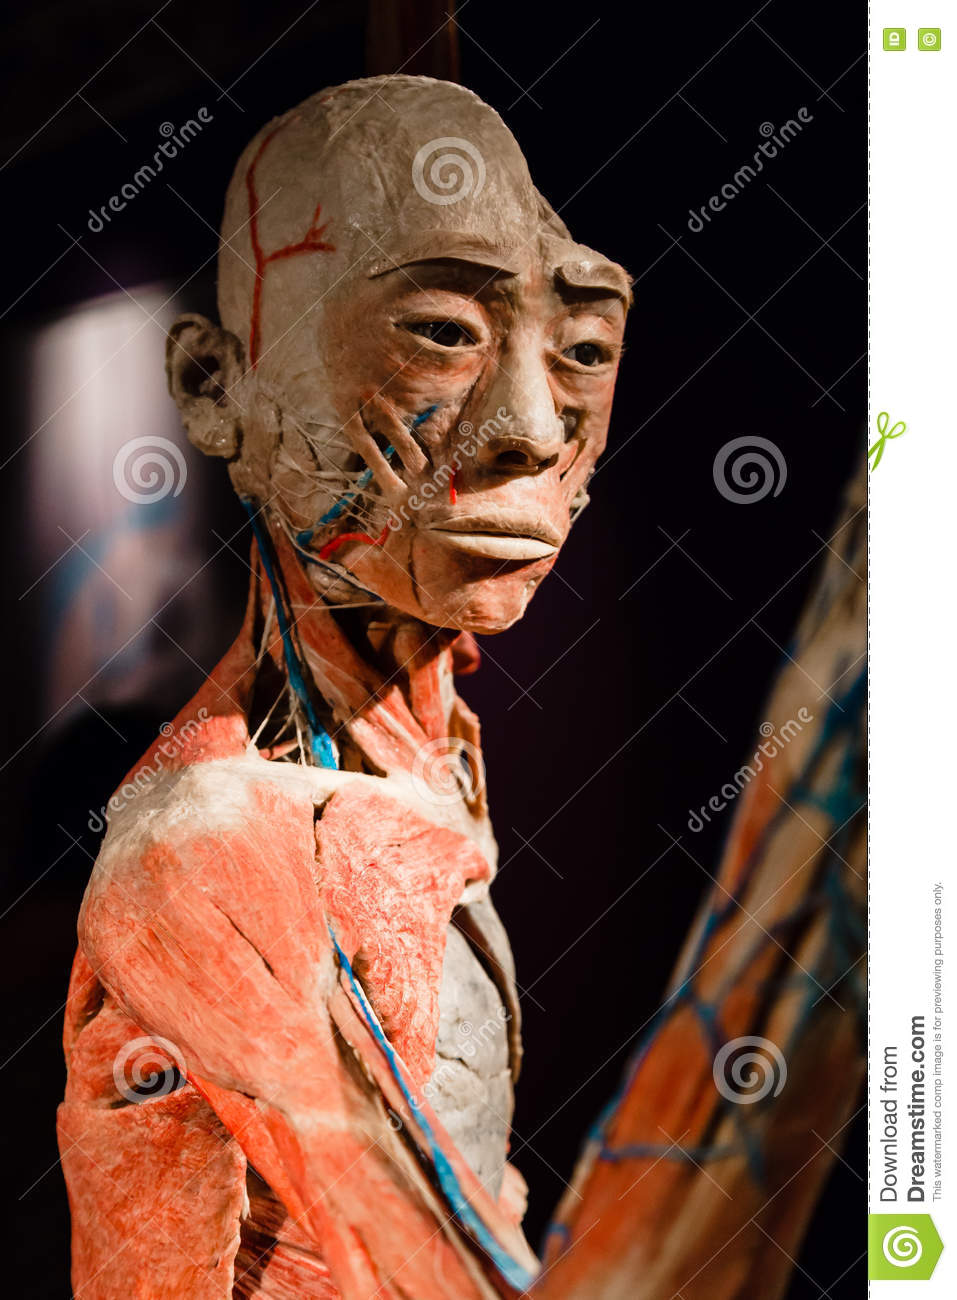 Plastinated Human Body On Display Editorial Photography Image Of